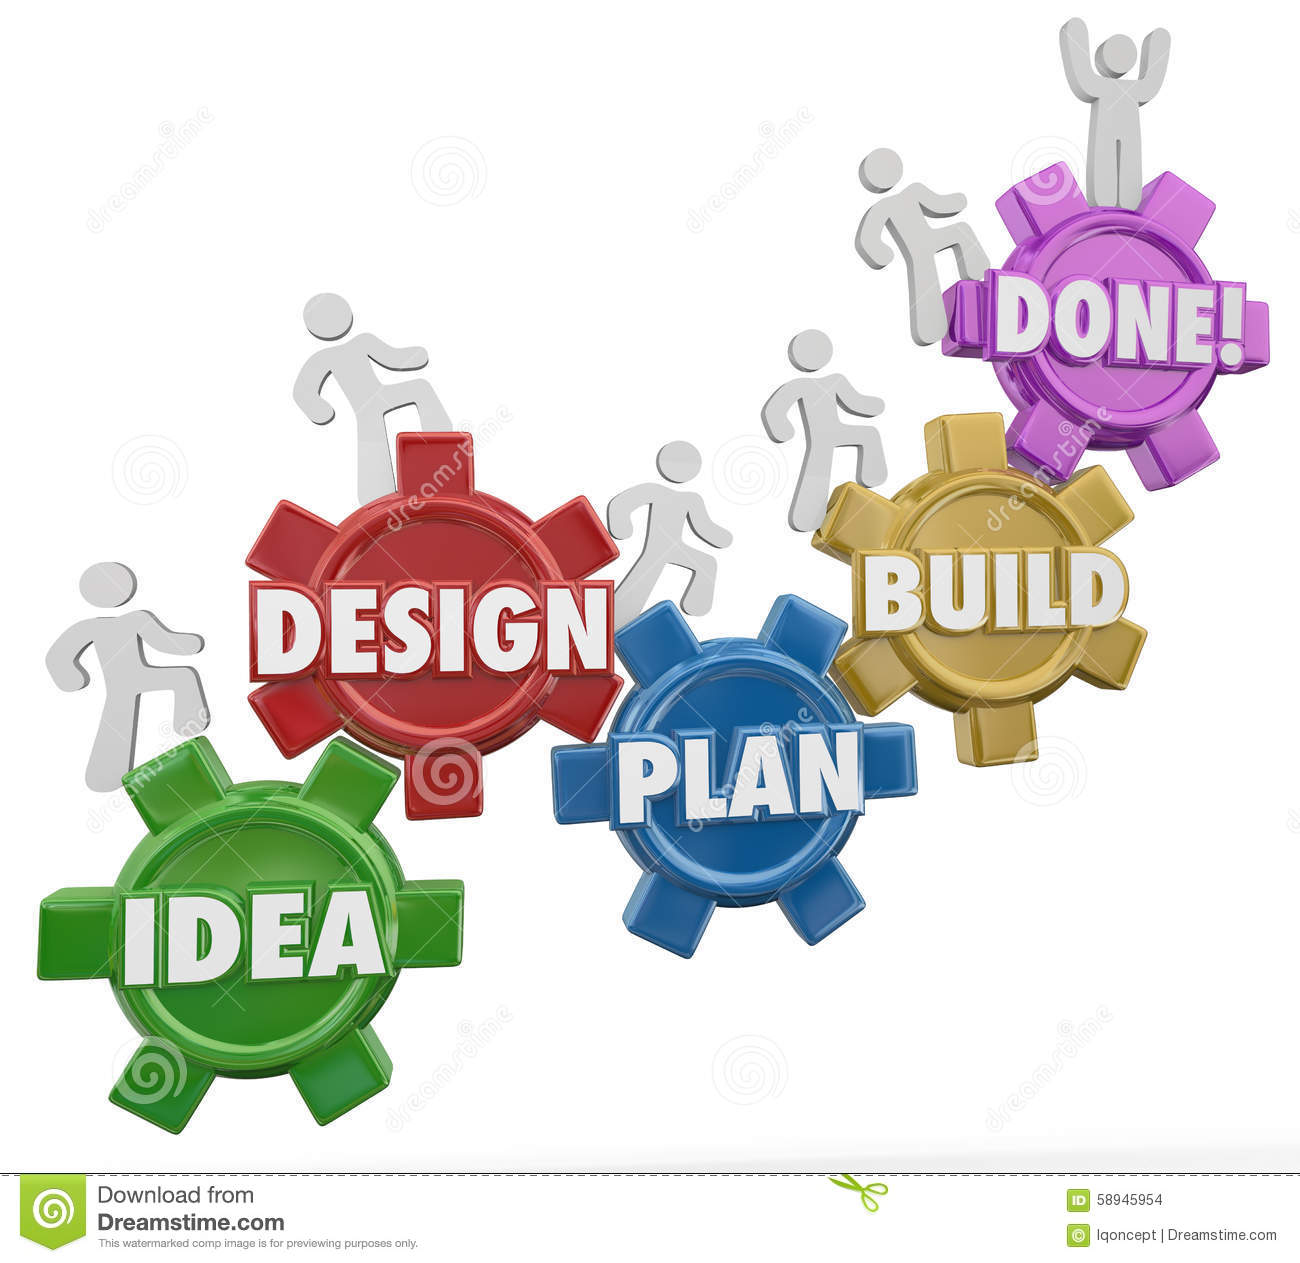 Idea design plan build done instructions project job task for Design plan build